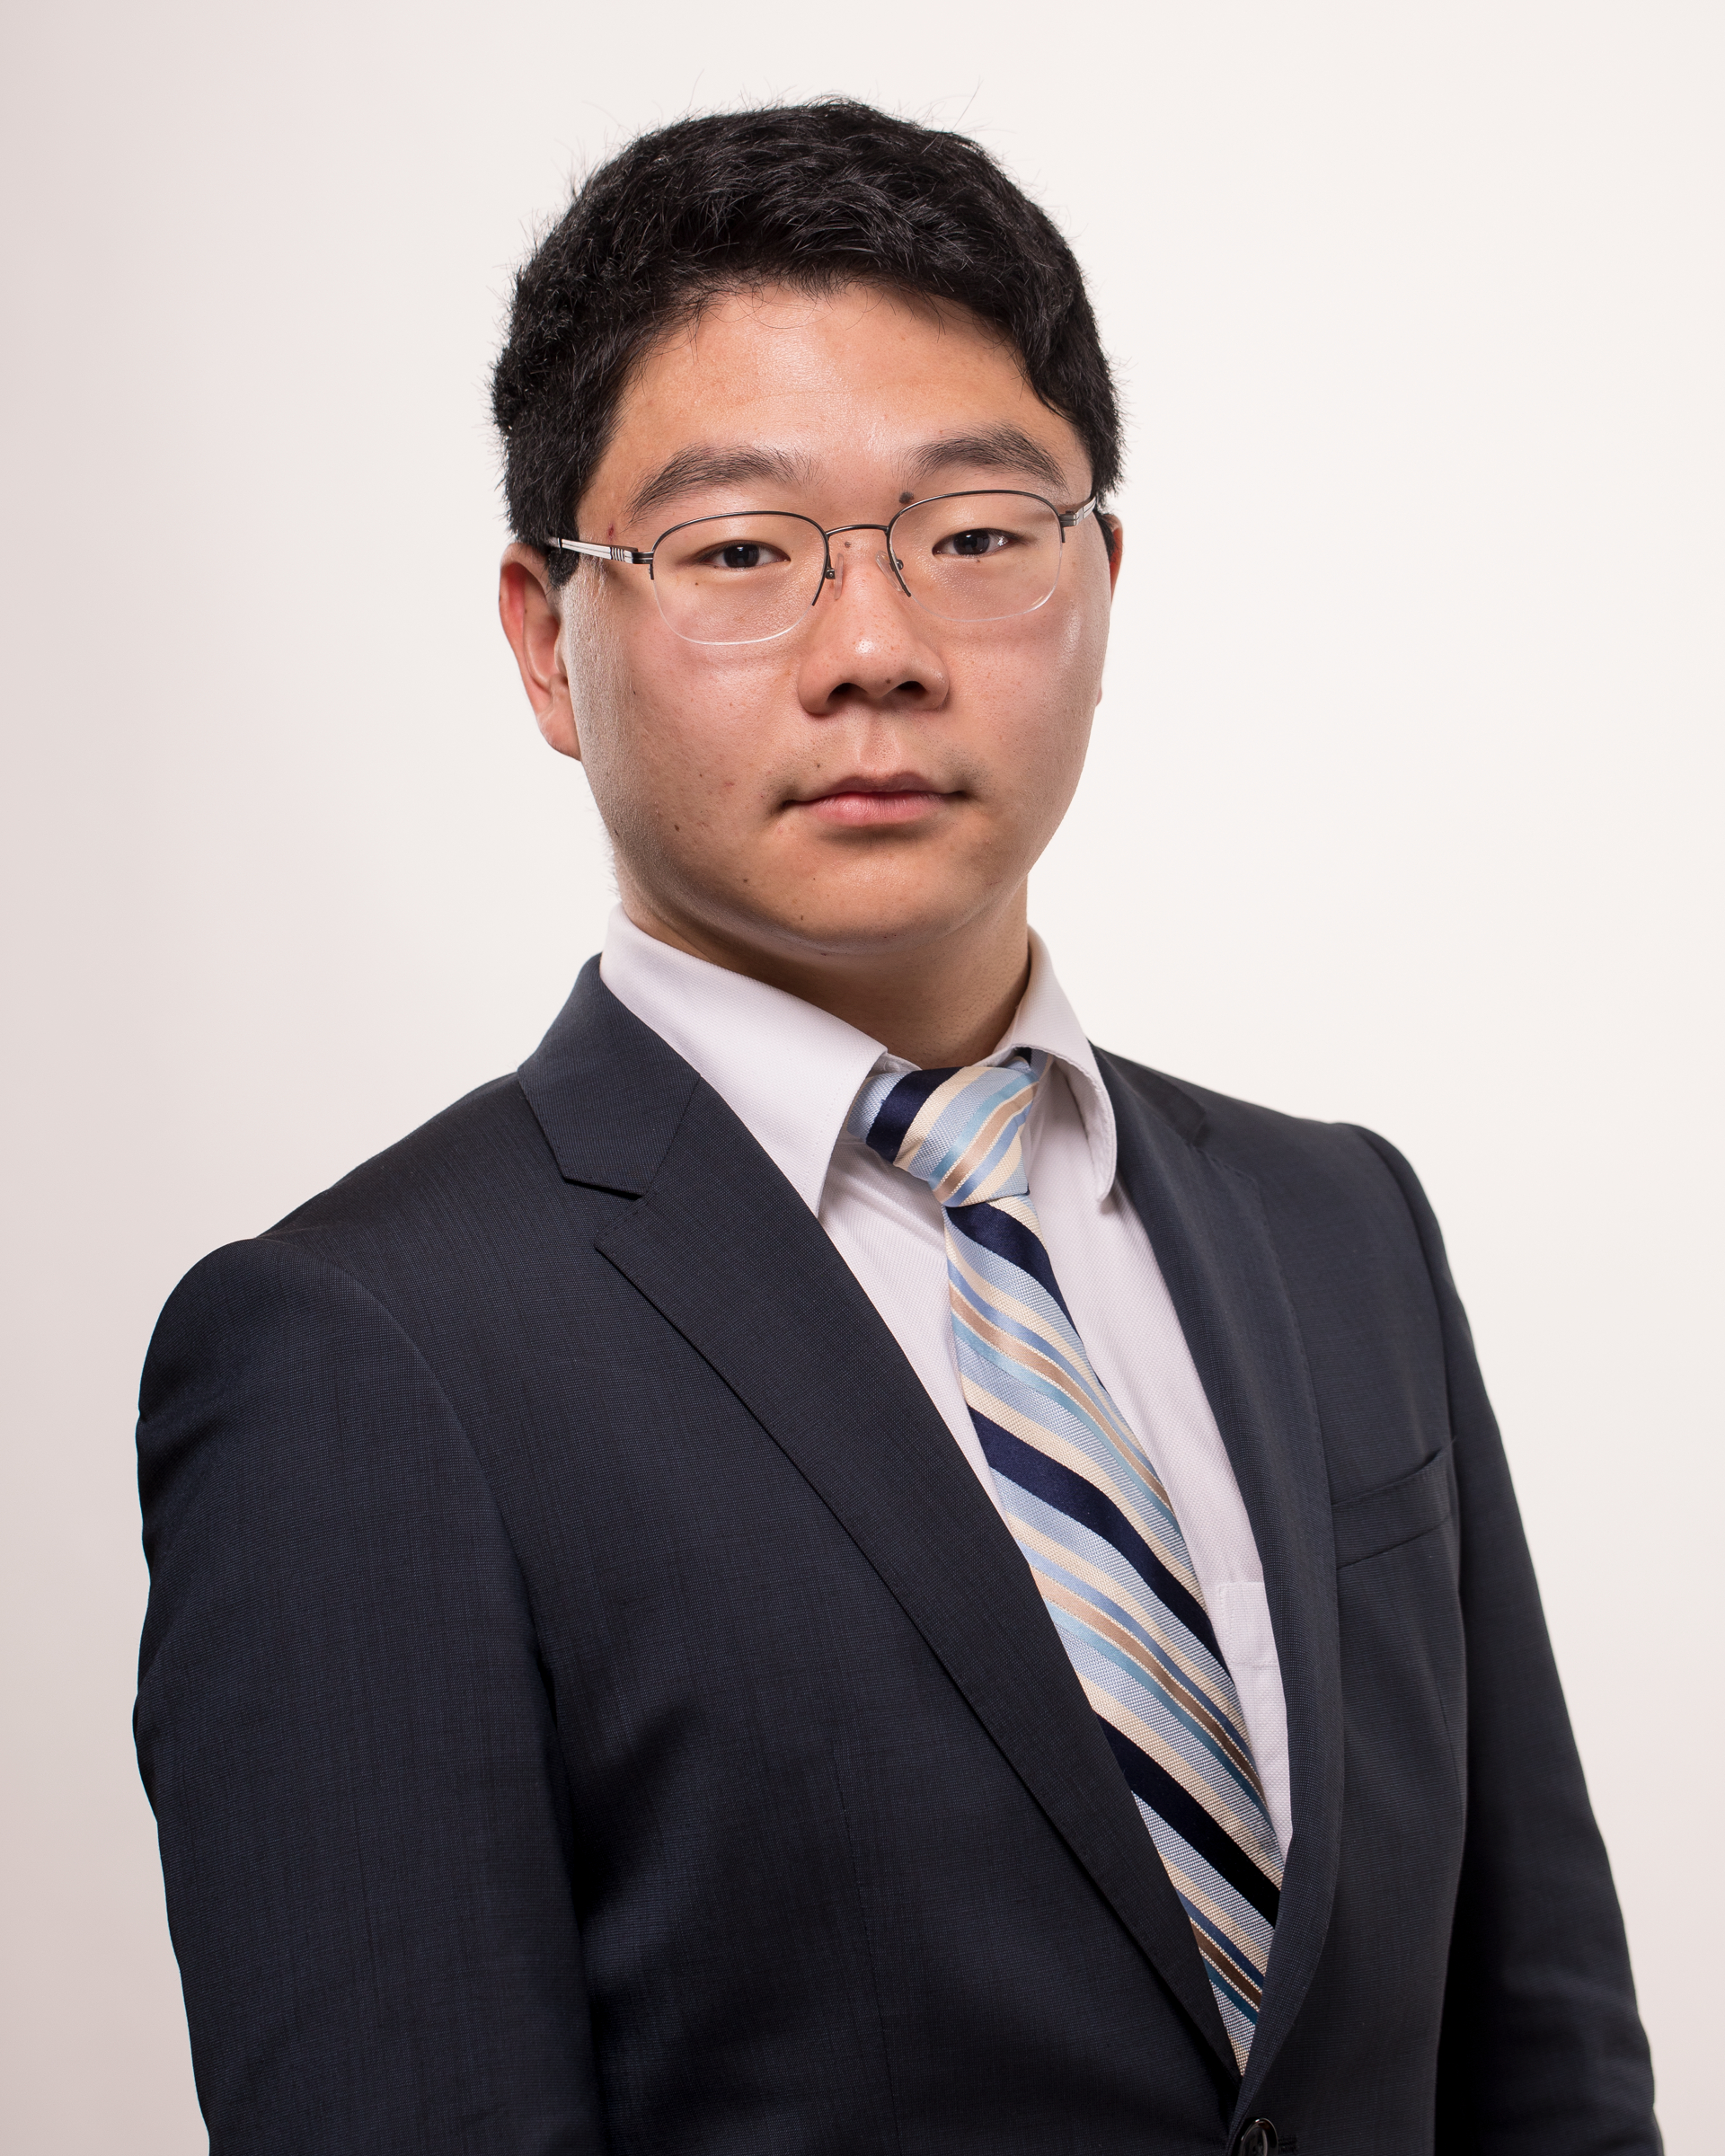 Jun Goo Kwak, Chemical Engineering major, is a Rising Researcher at the University of Massachusetts Amherst